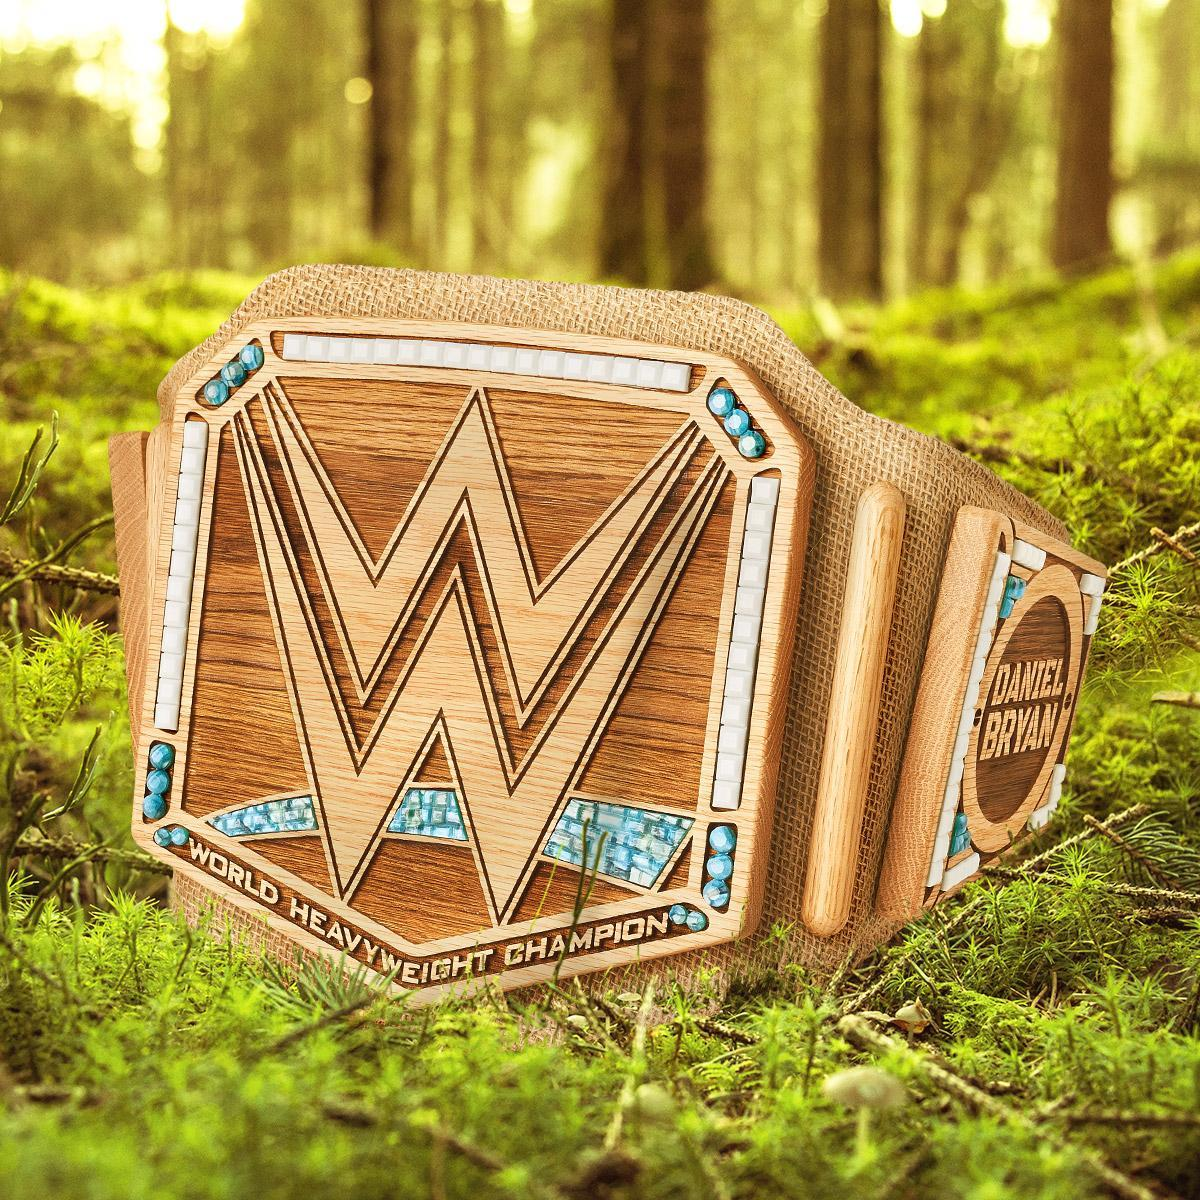 Ready for a change! Become the Planet's Champion with the @WWEDanielBryan Eco-Friendly #WWEChampionship Replica Title at #WWEShop! #WWE